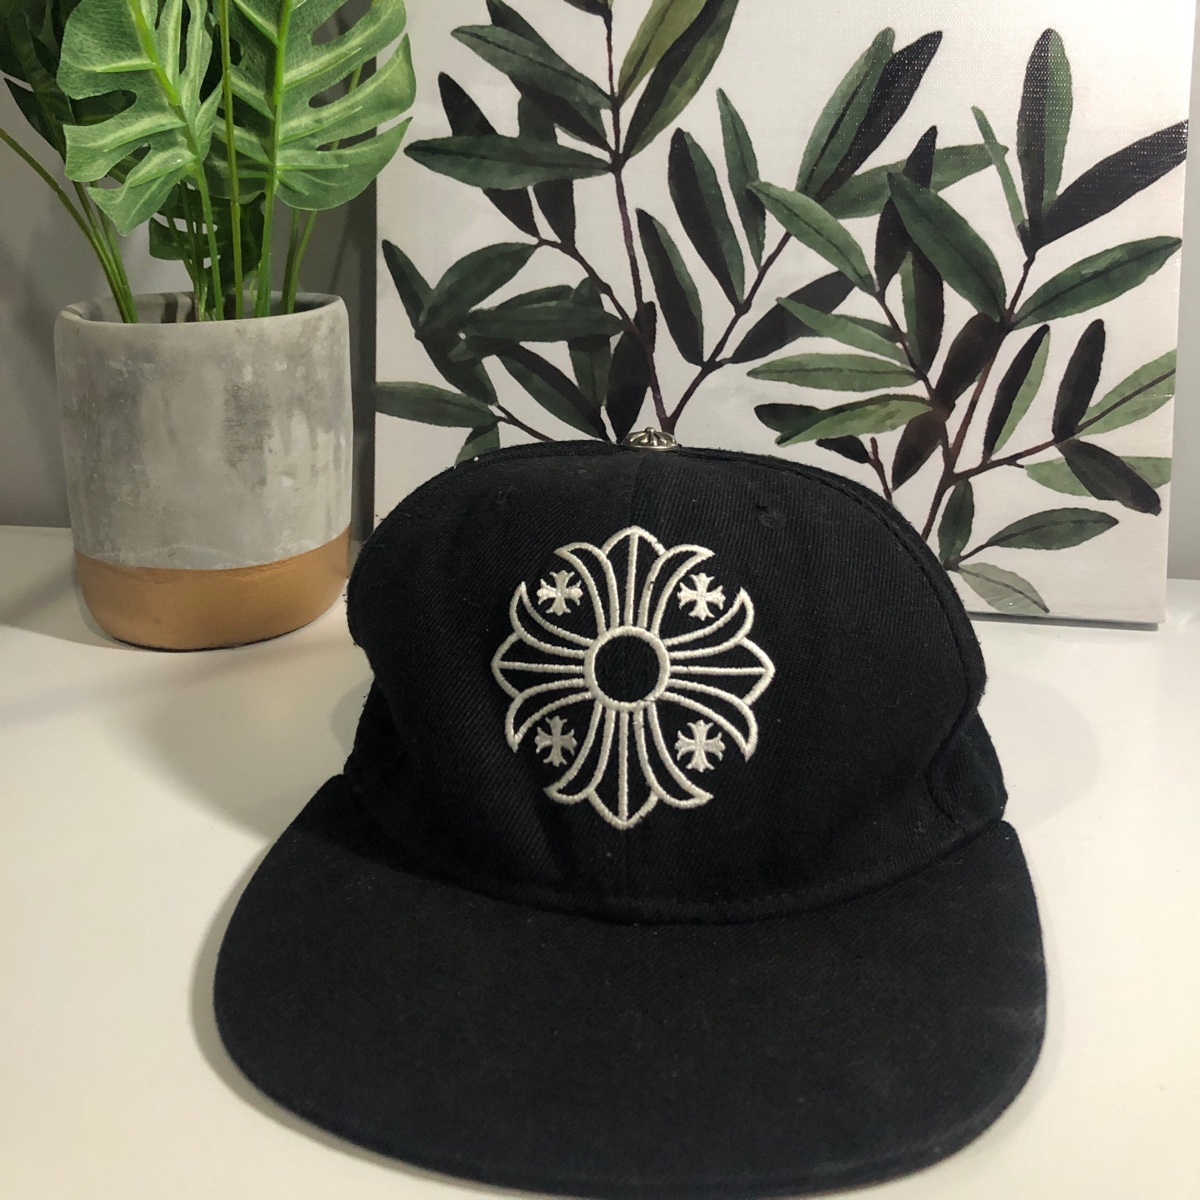 Rare Black Chrome Hearts Cap